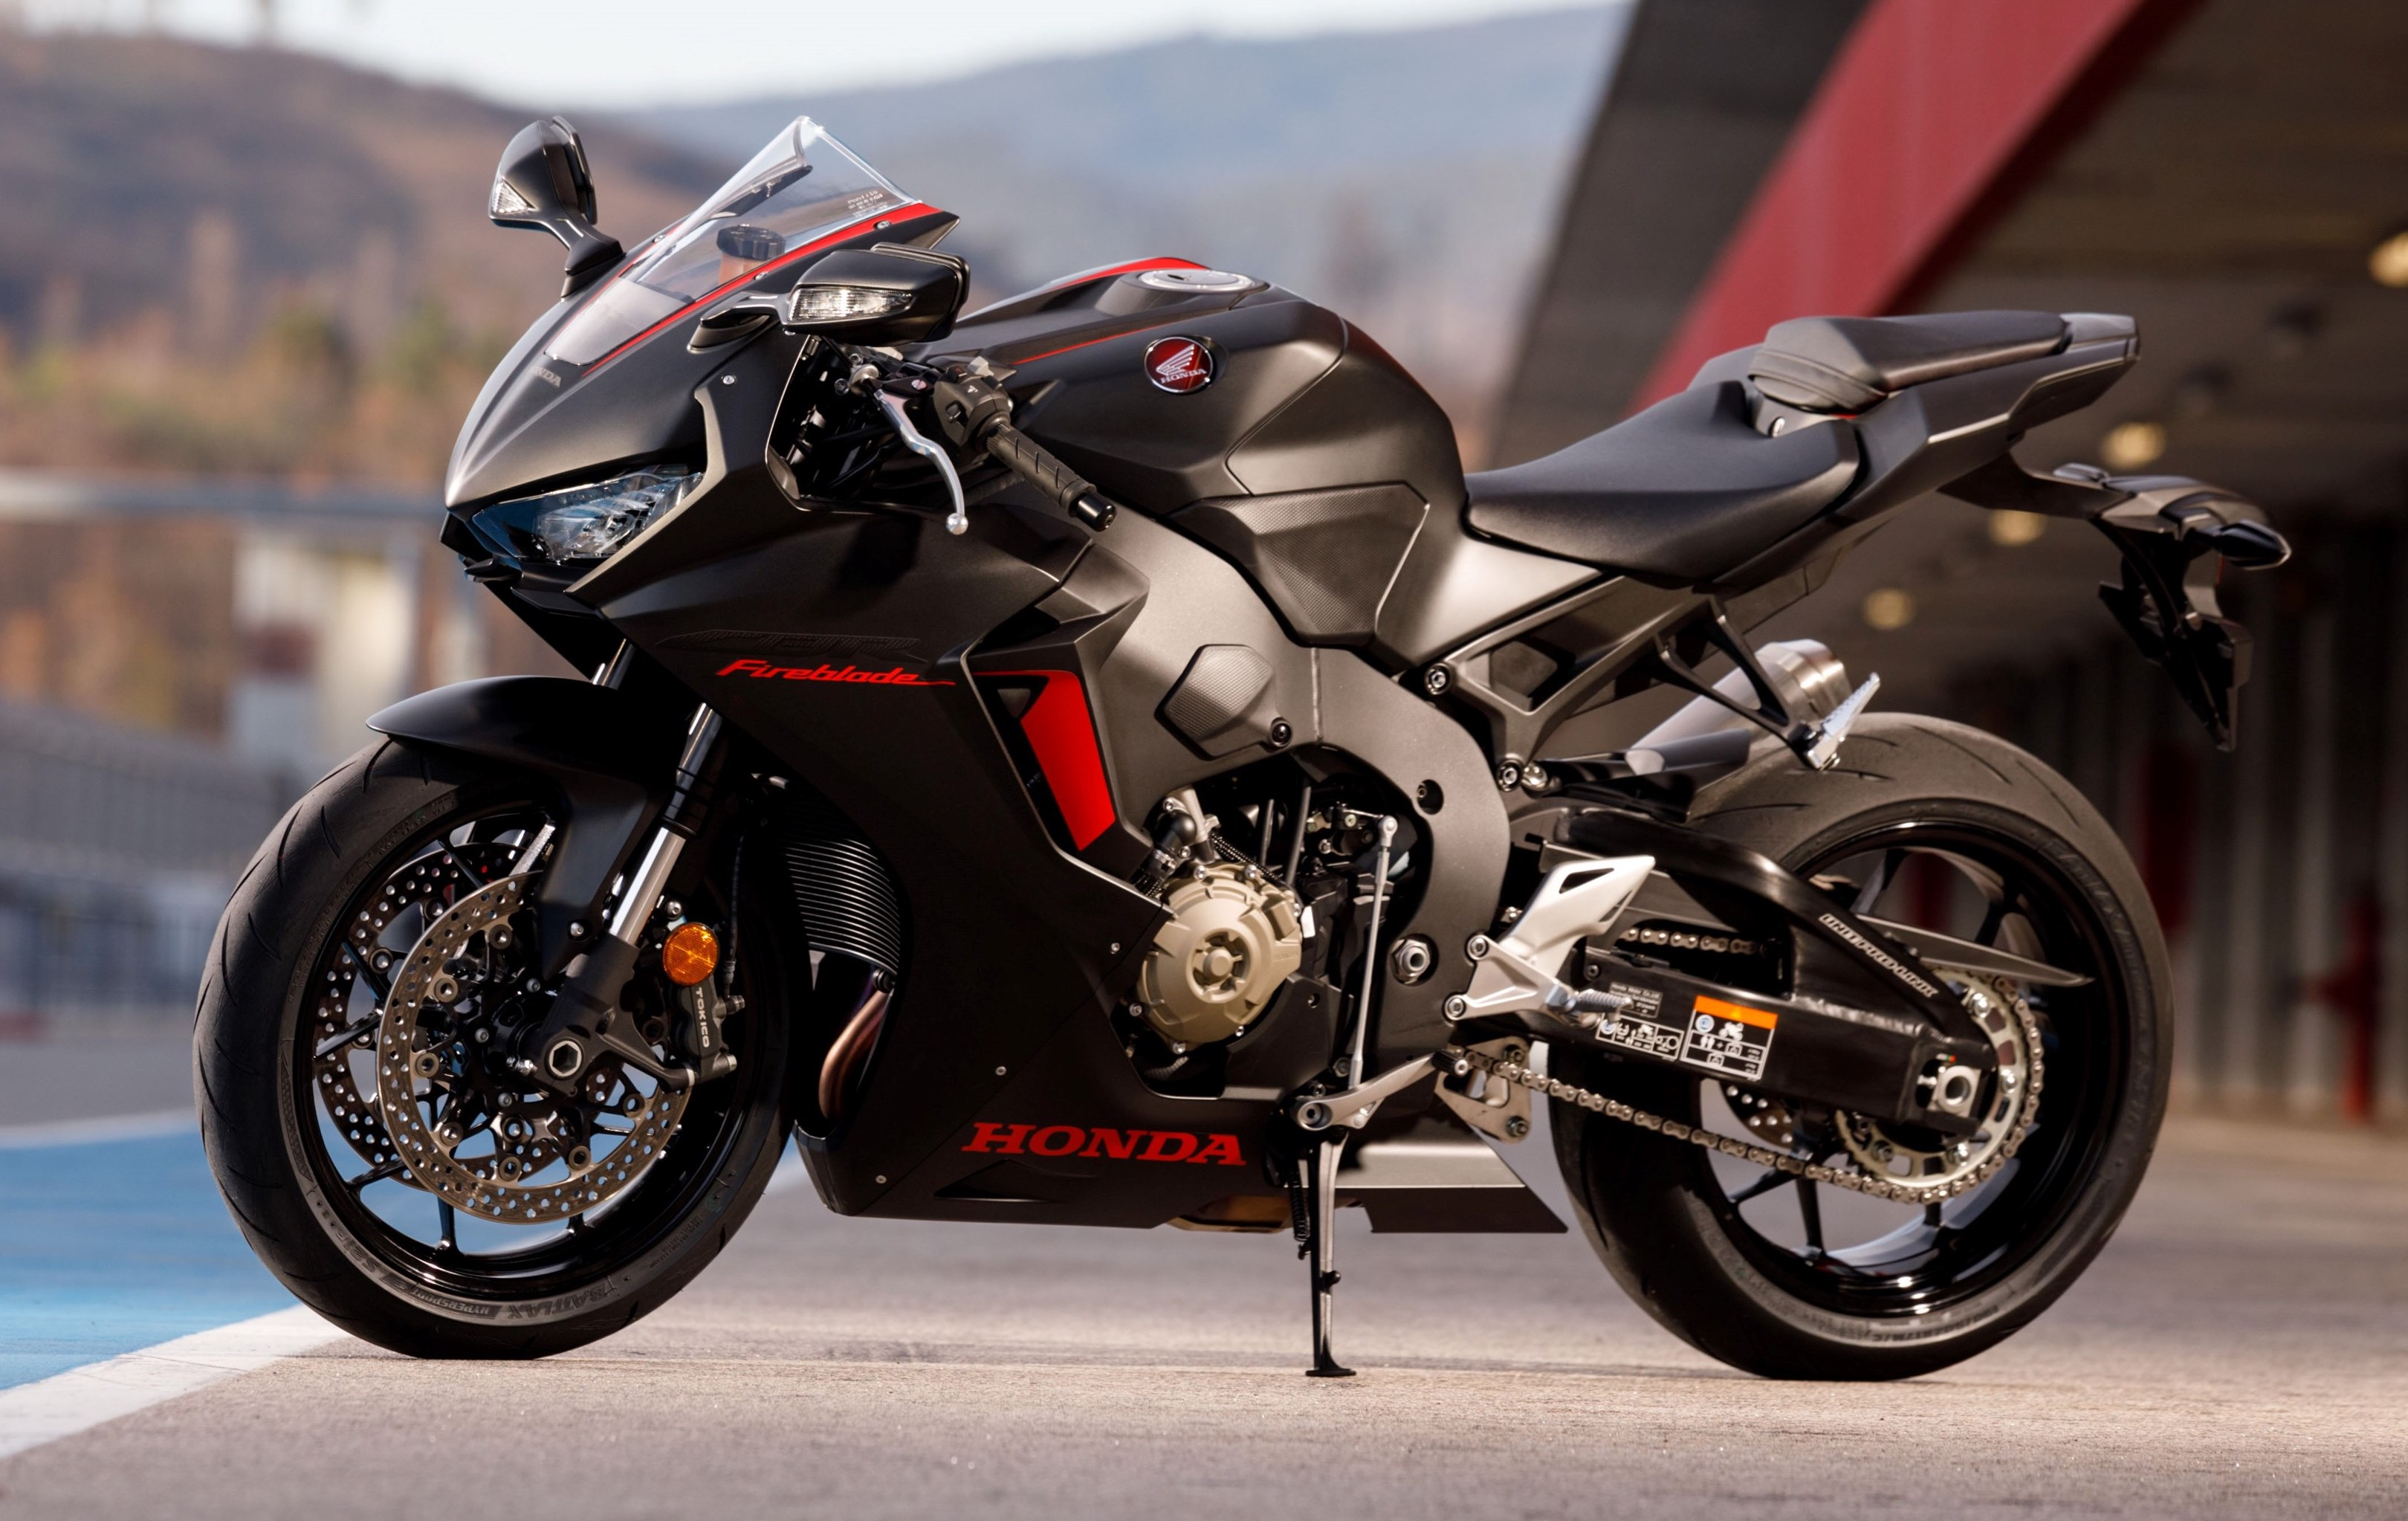 New Honda Motorcycles 2018 >> 2018 sees 10 new motorcycles from Boon Siew Honda – CBR1000RR, X-ADV, CB1000R+ and CRF1000L ...